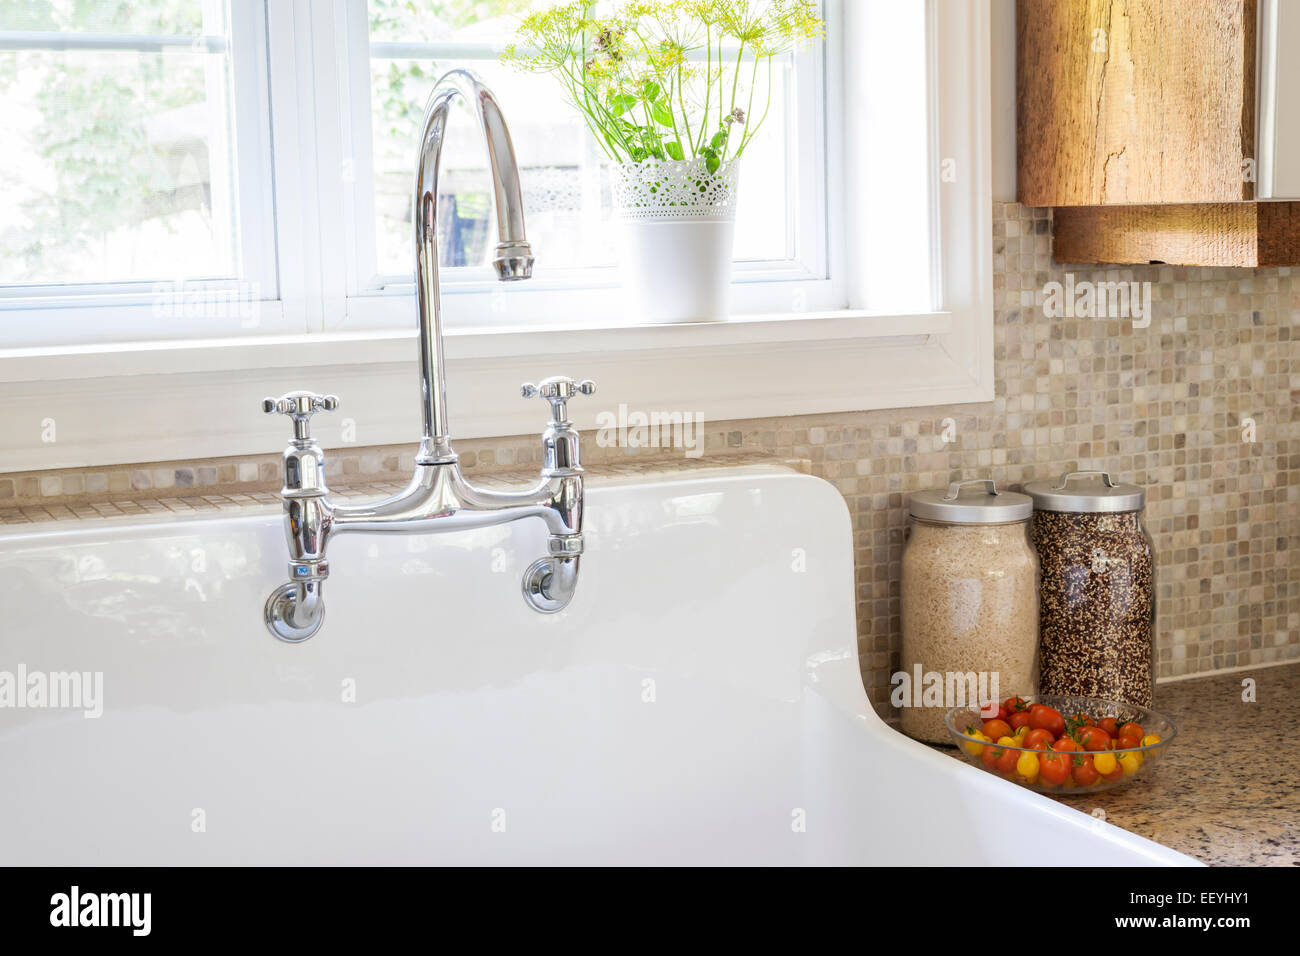 rustic kitchen sinks formica table white porcelain sink with curved faucet and tile backsplash under large window